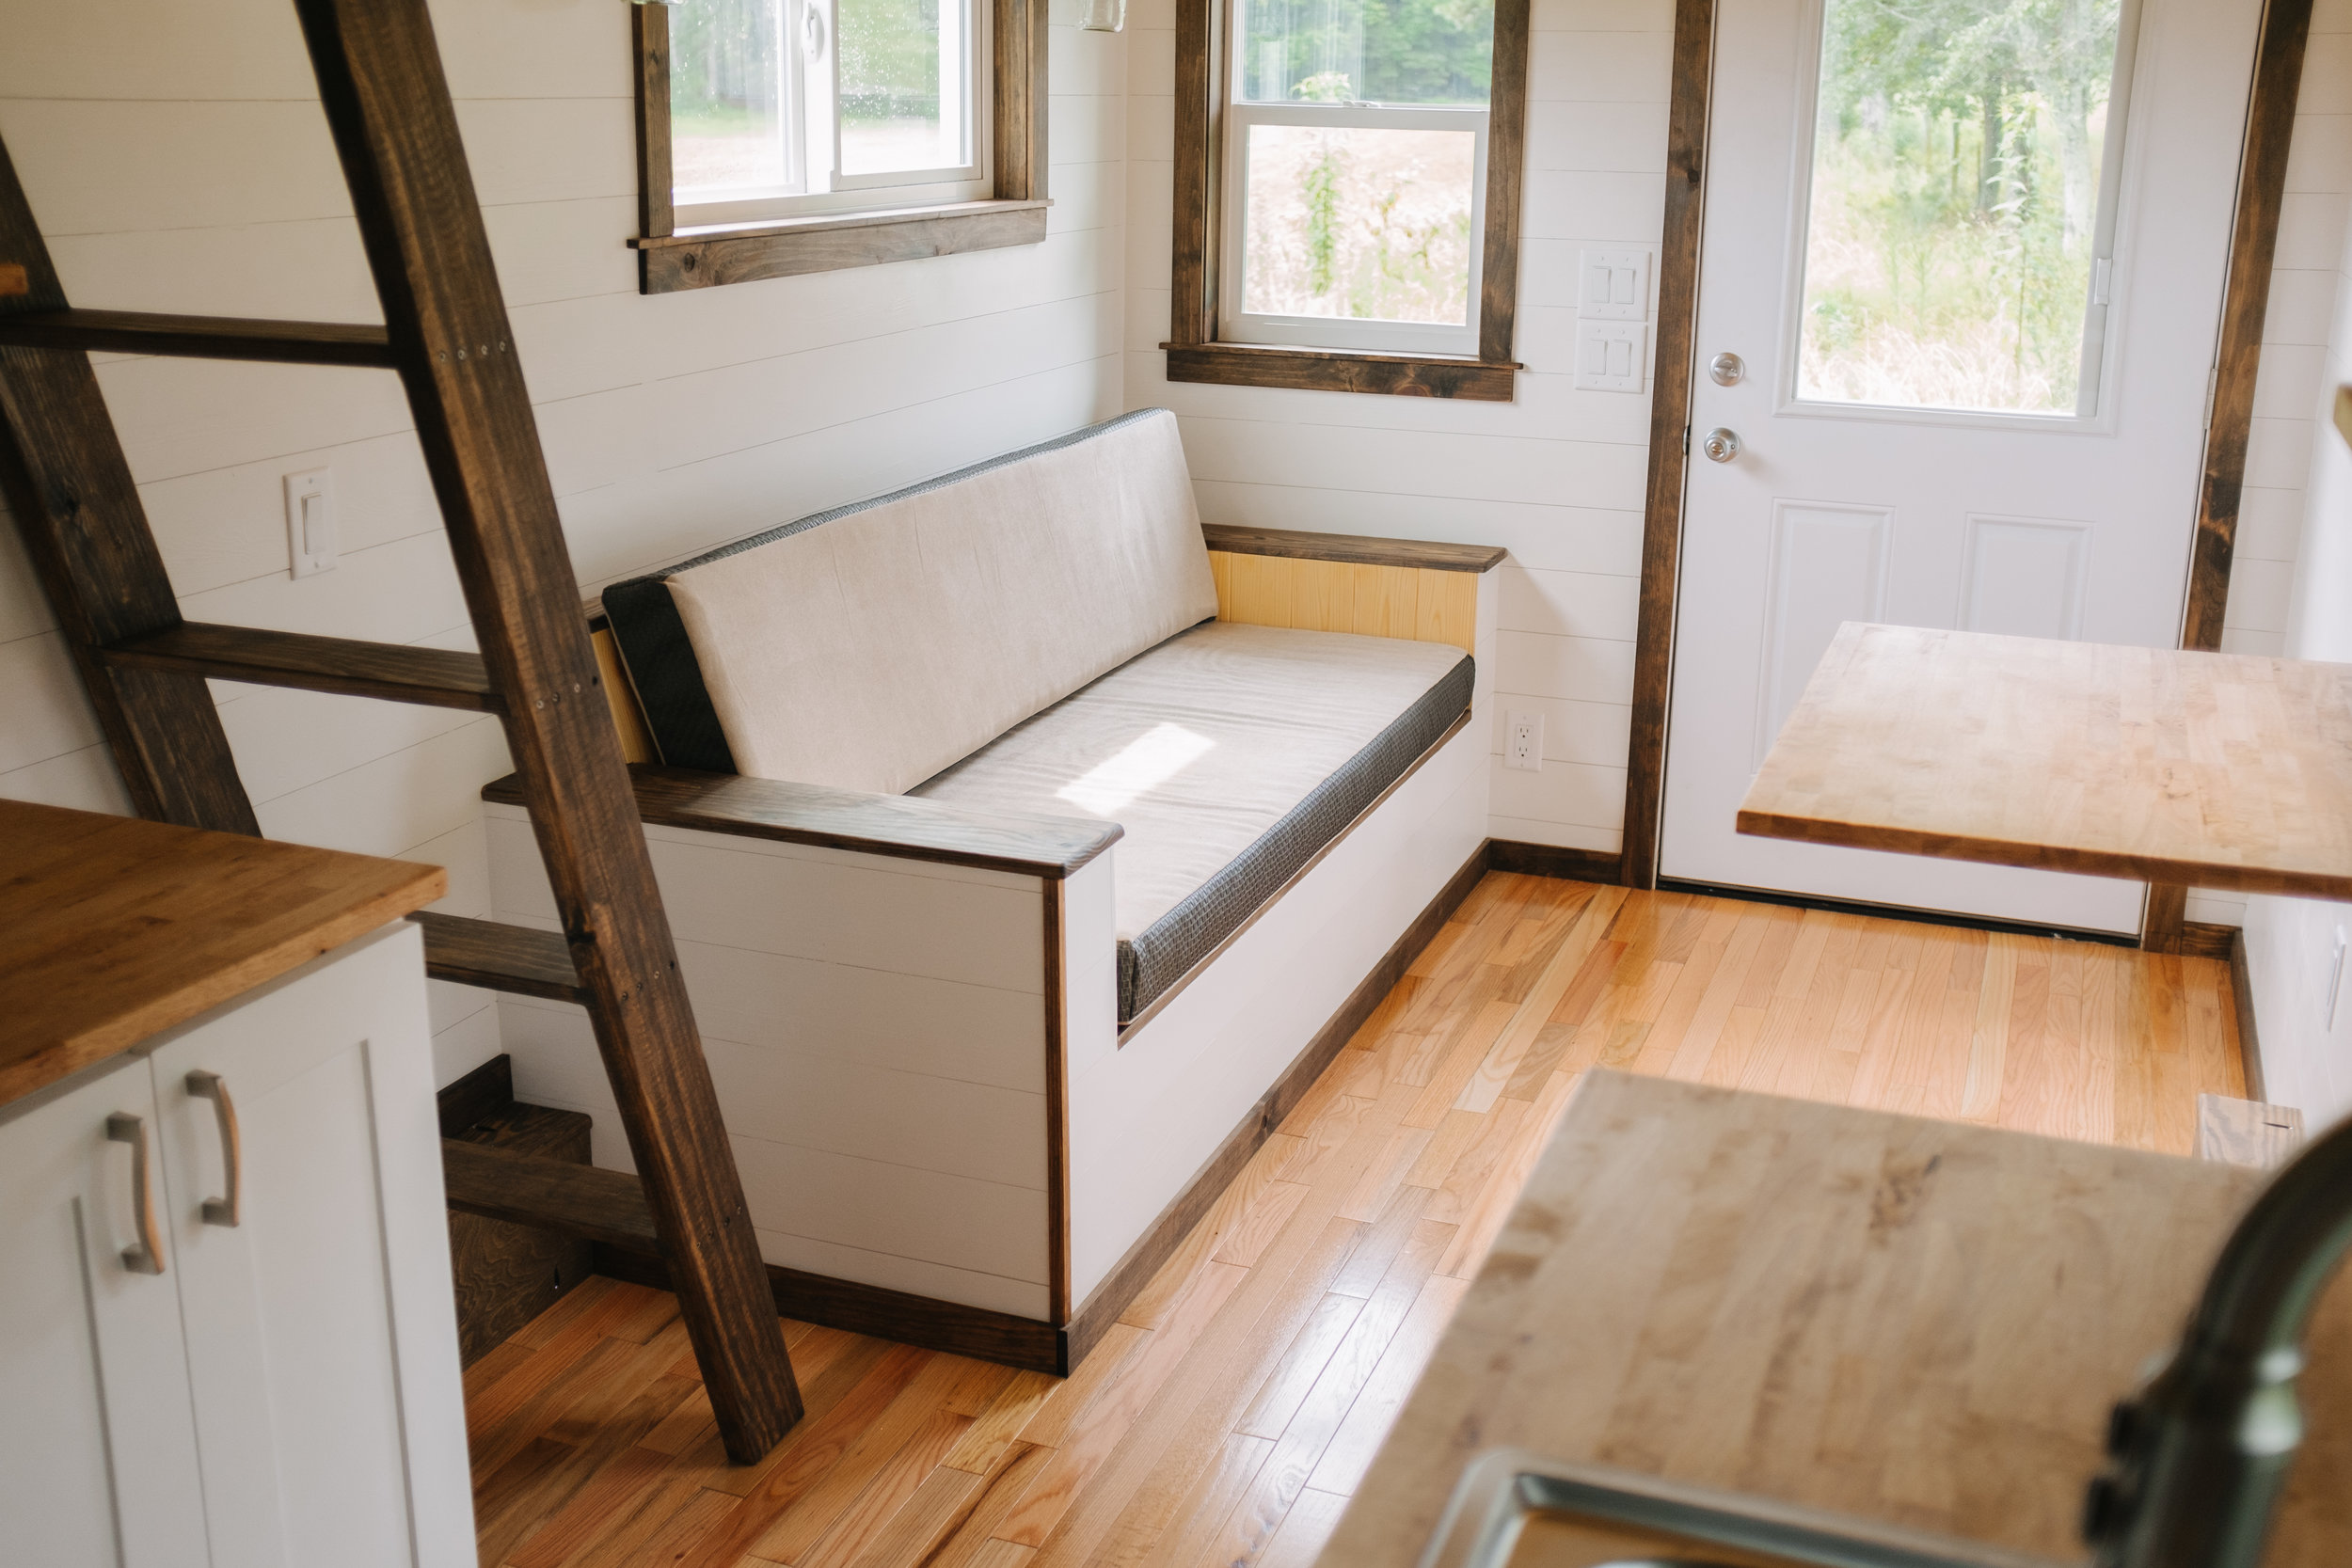 The Acadia by Wind River Tiny Homes - tiny house, ship lap, storage couch, oak hardwood floor, shaker cabinets, fold down table